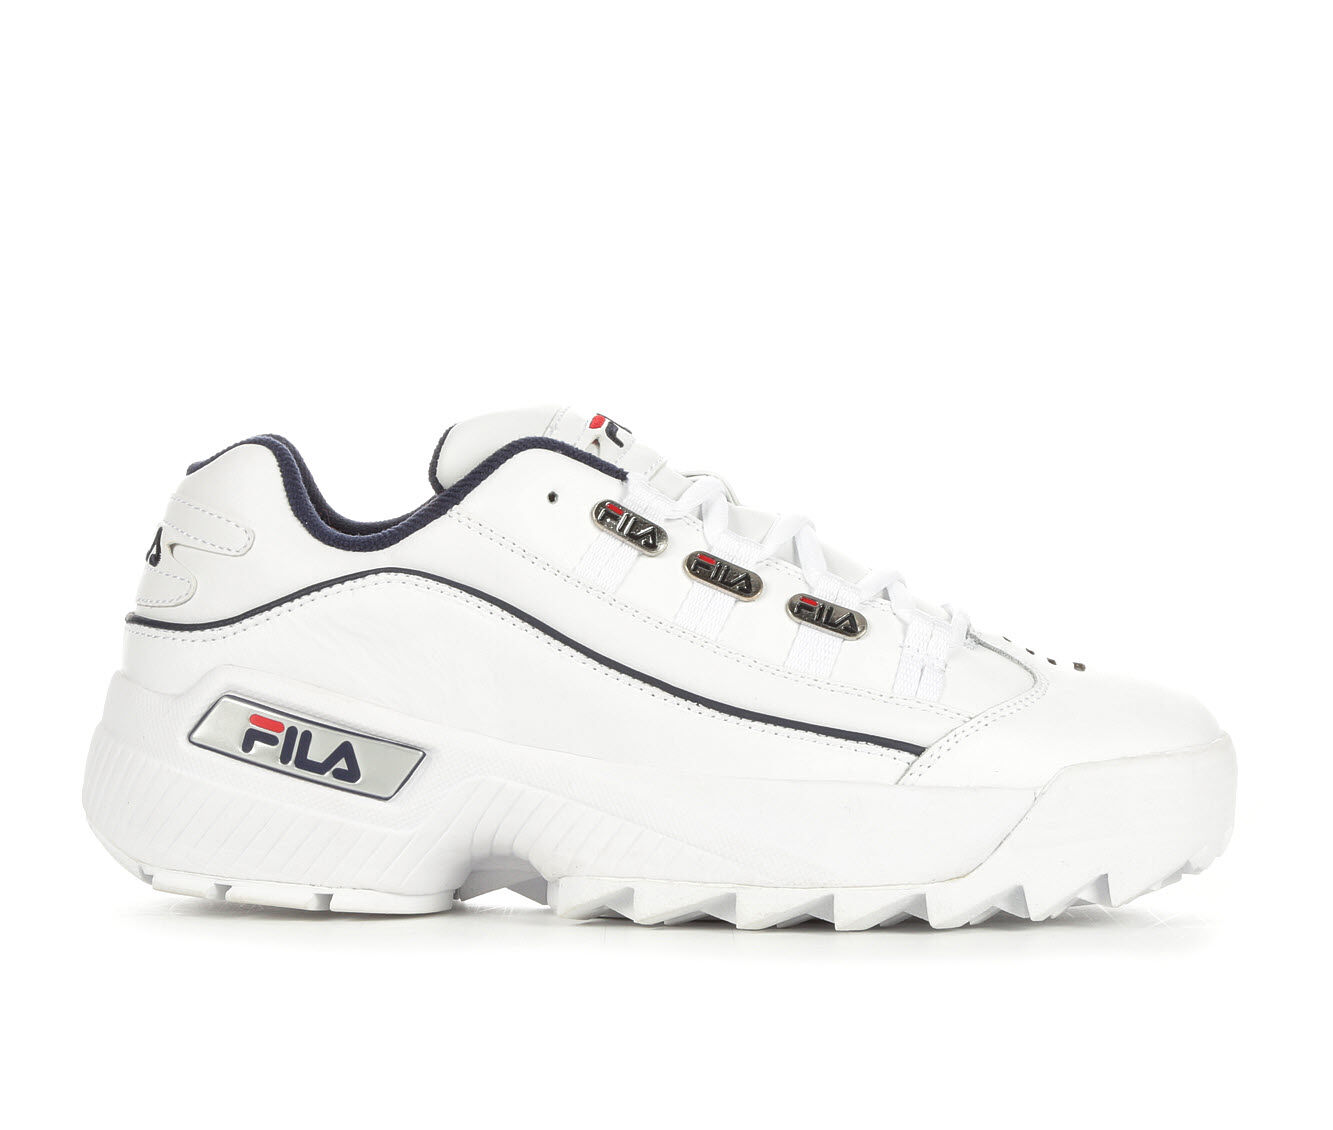 Men's Fila Hometown Sneakers Wht/Nvy/Red